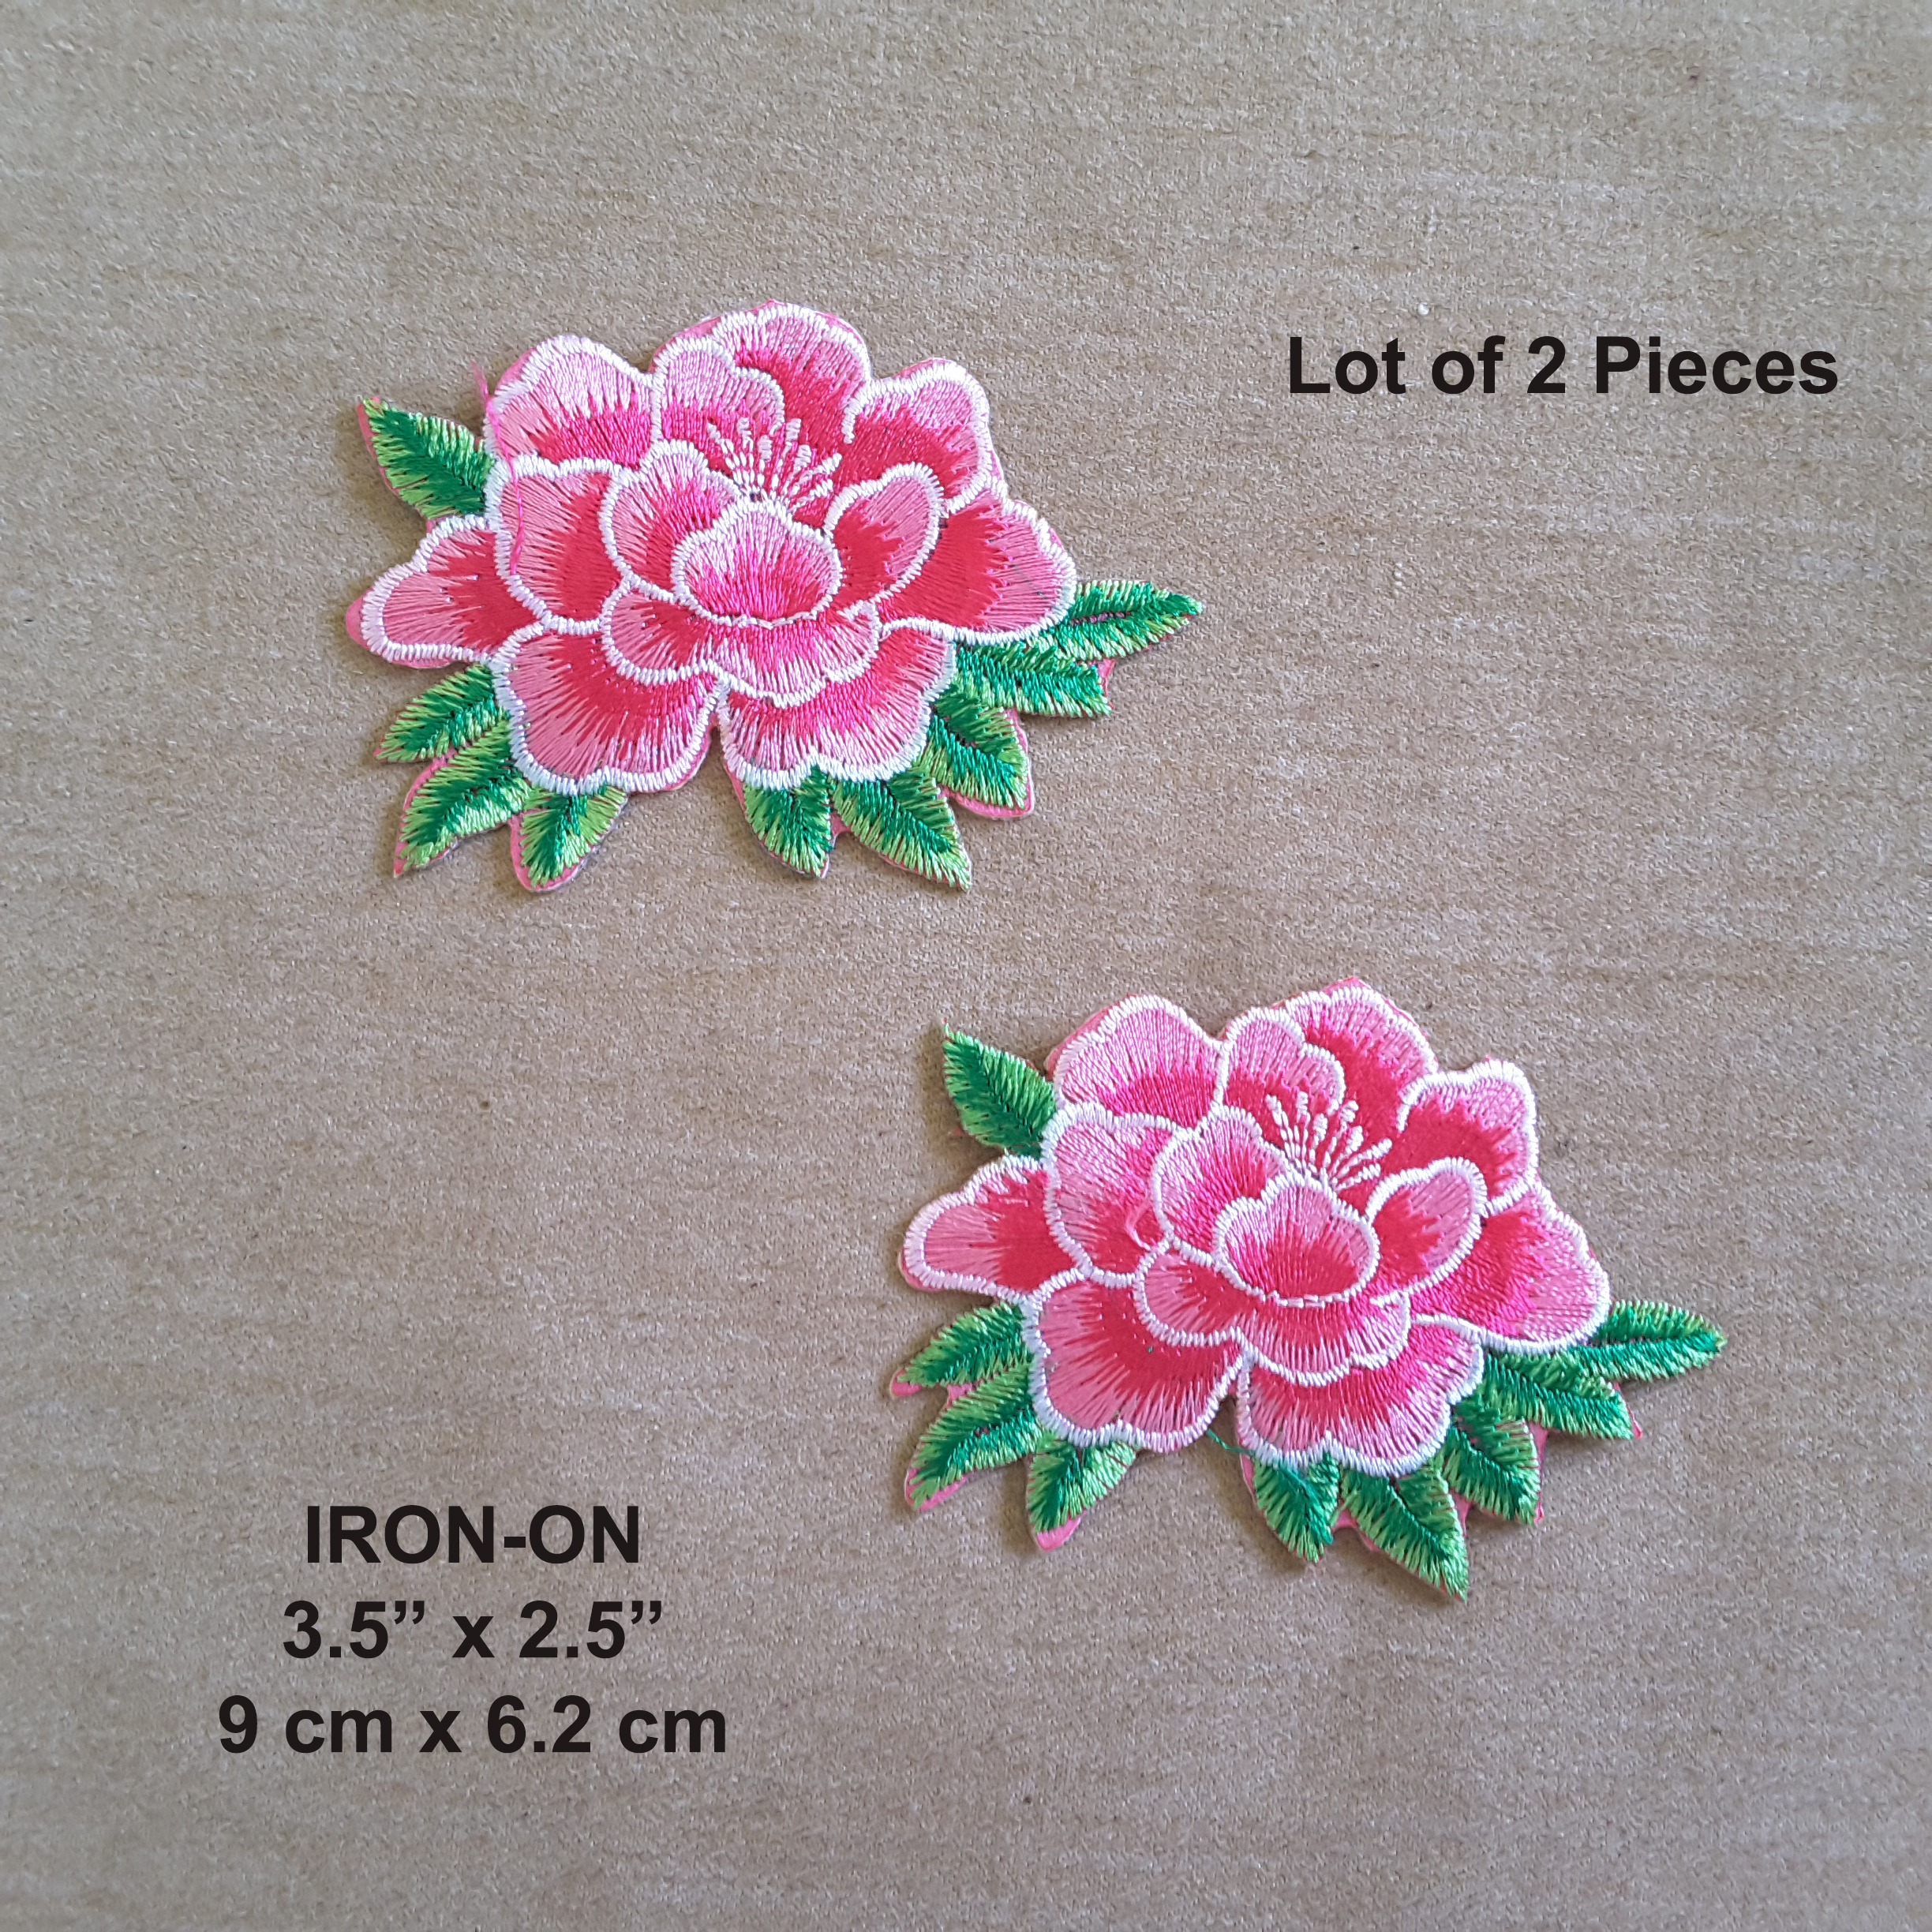 Lot of 2 pink lotus flower embroidered iron on flowers patch youre viewing lot of 2 pink lotus flower embroidered iron on flowers patch 1015 mightylinksfo